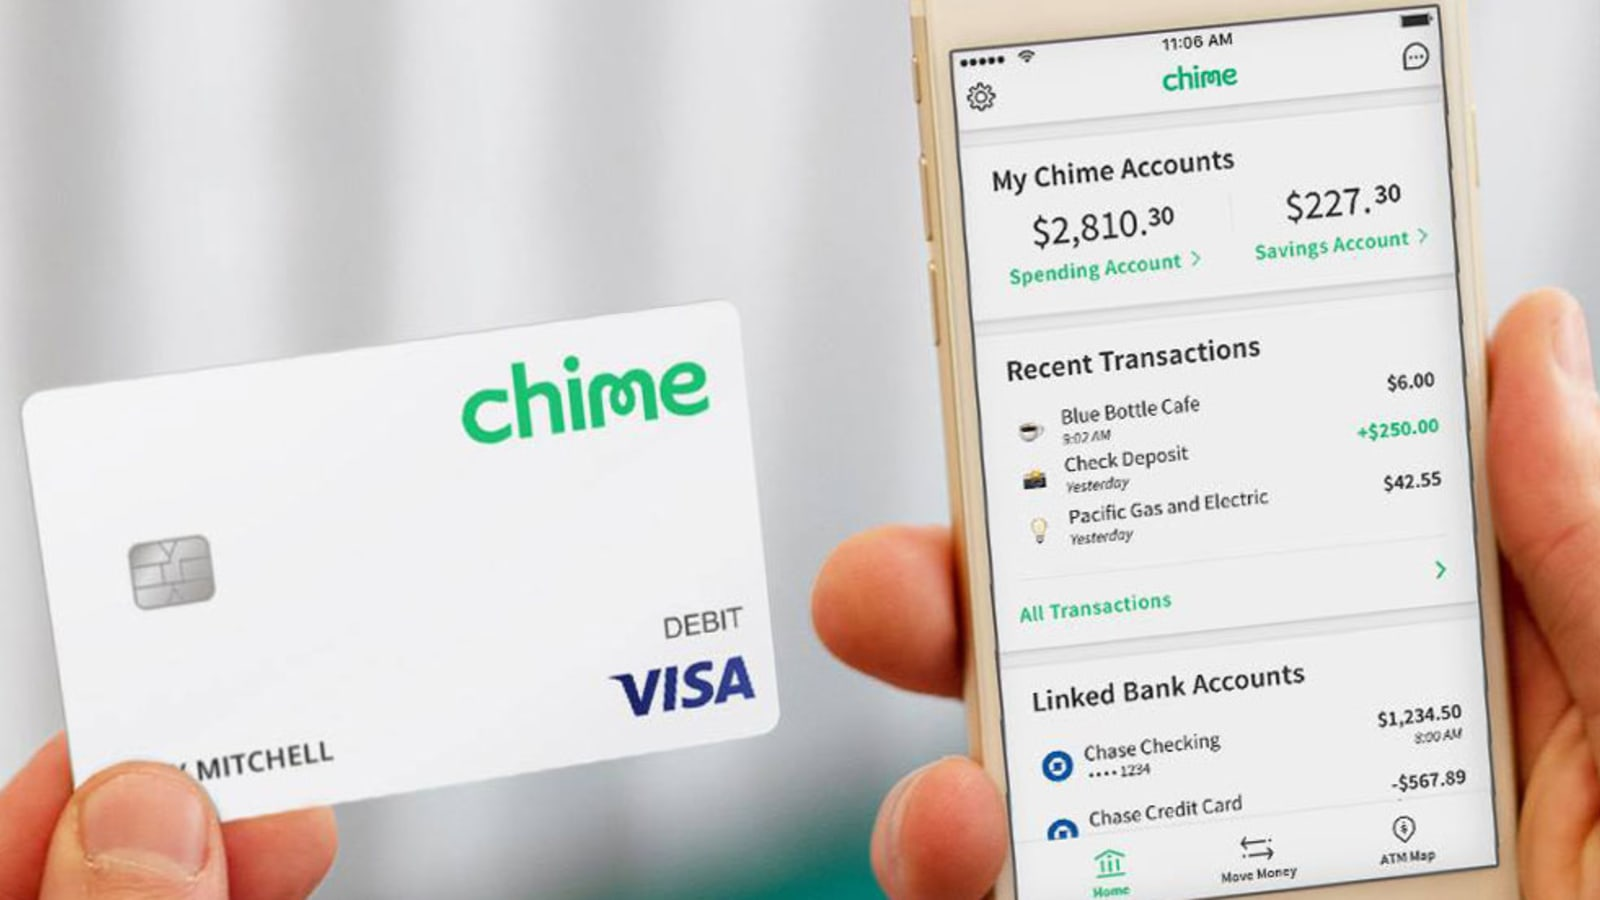 The Benefits Of Banking With Chime Bank Account Officialsavings